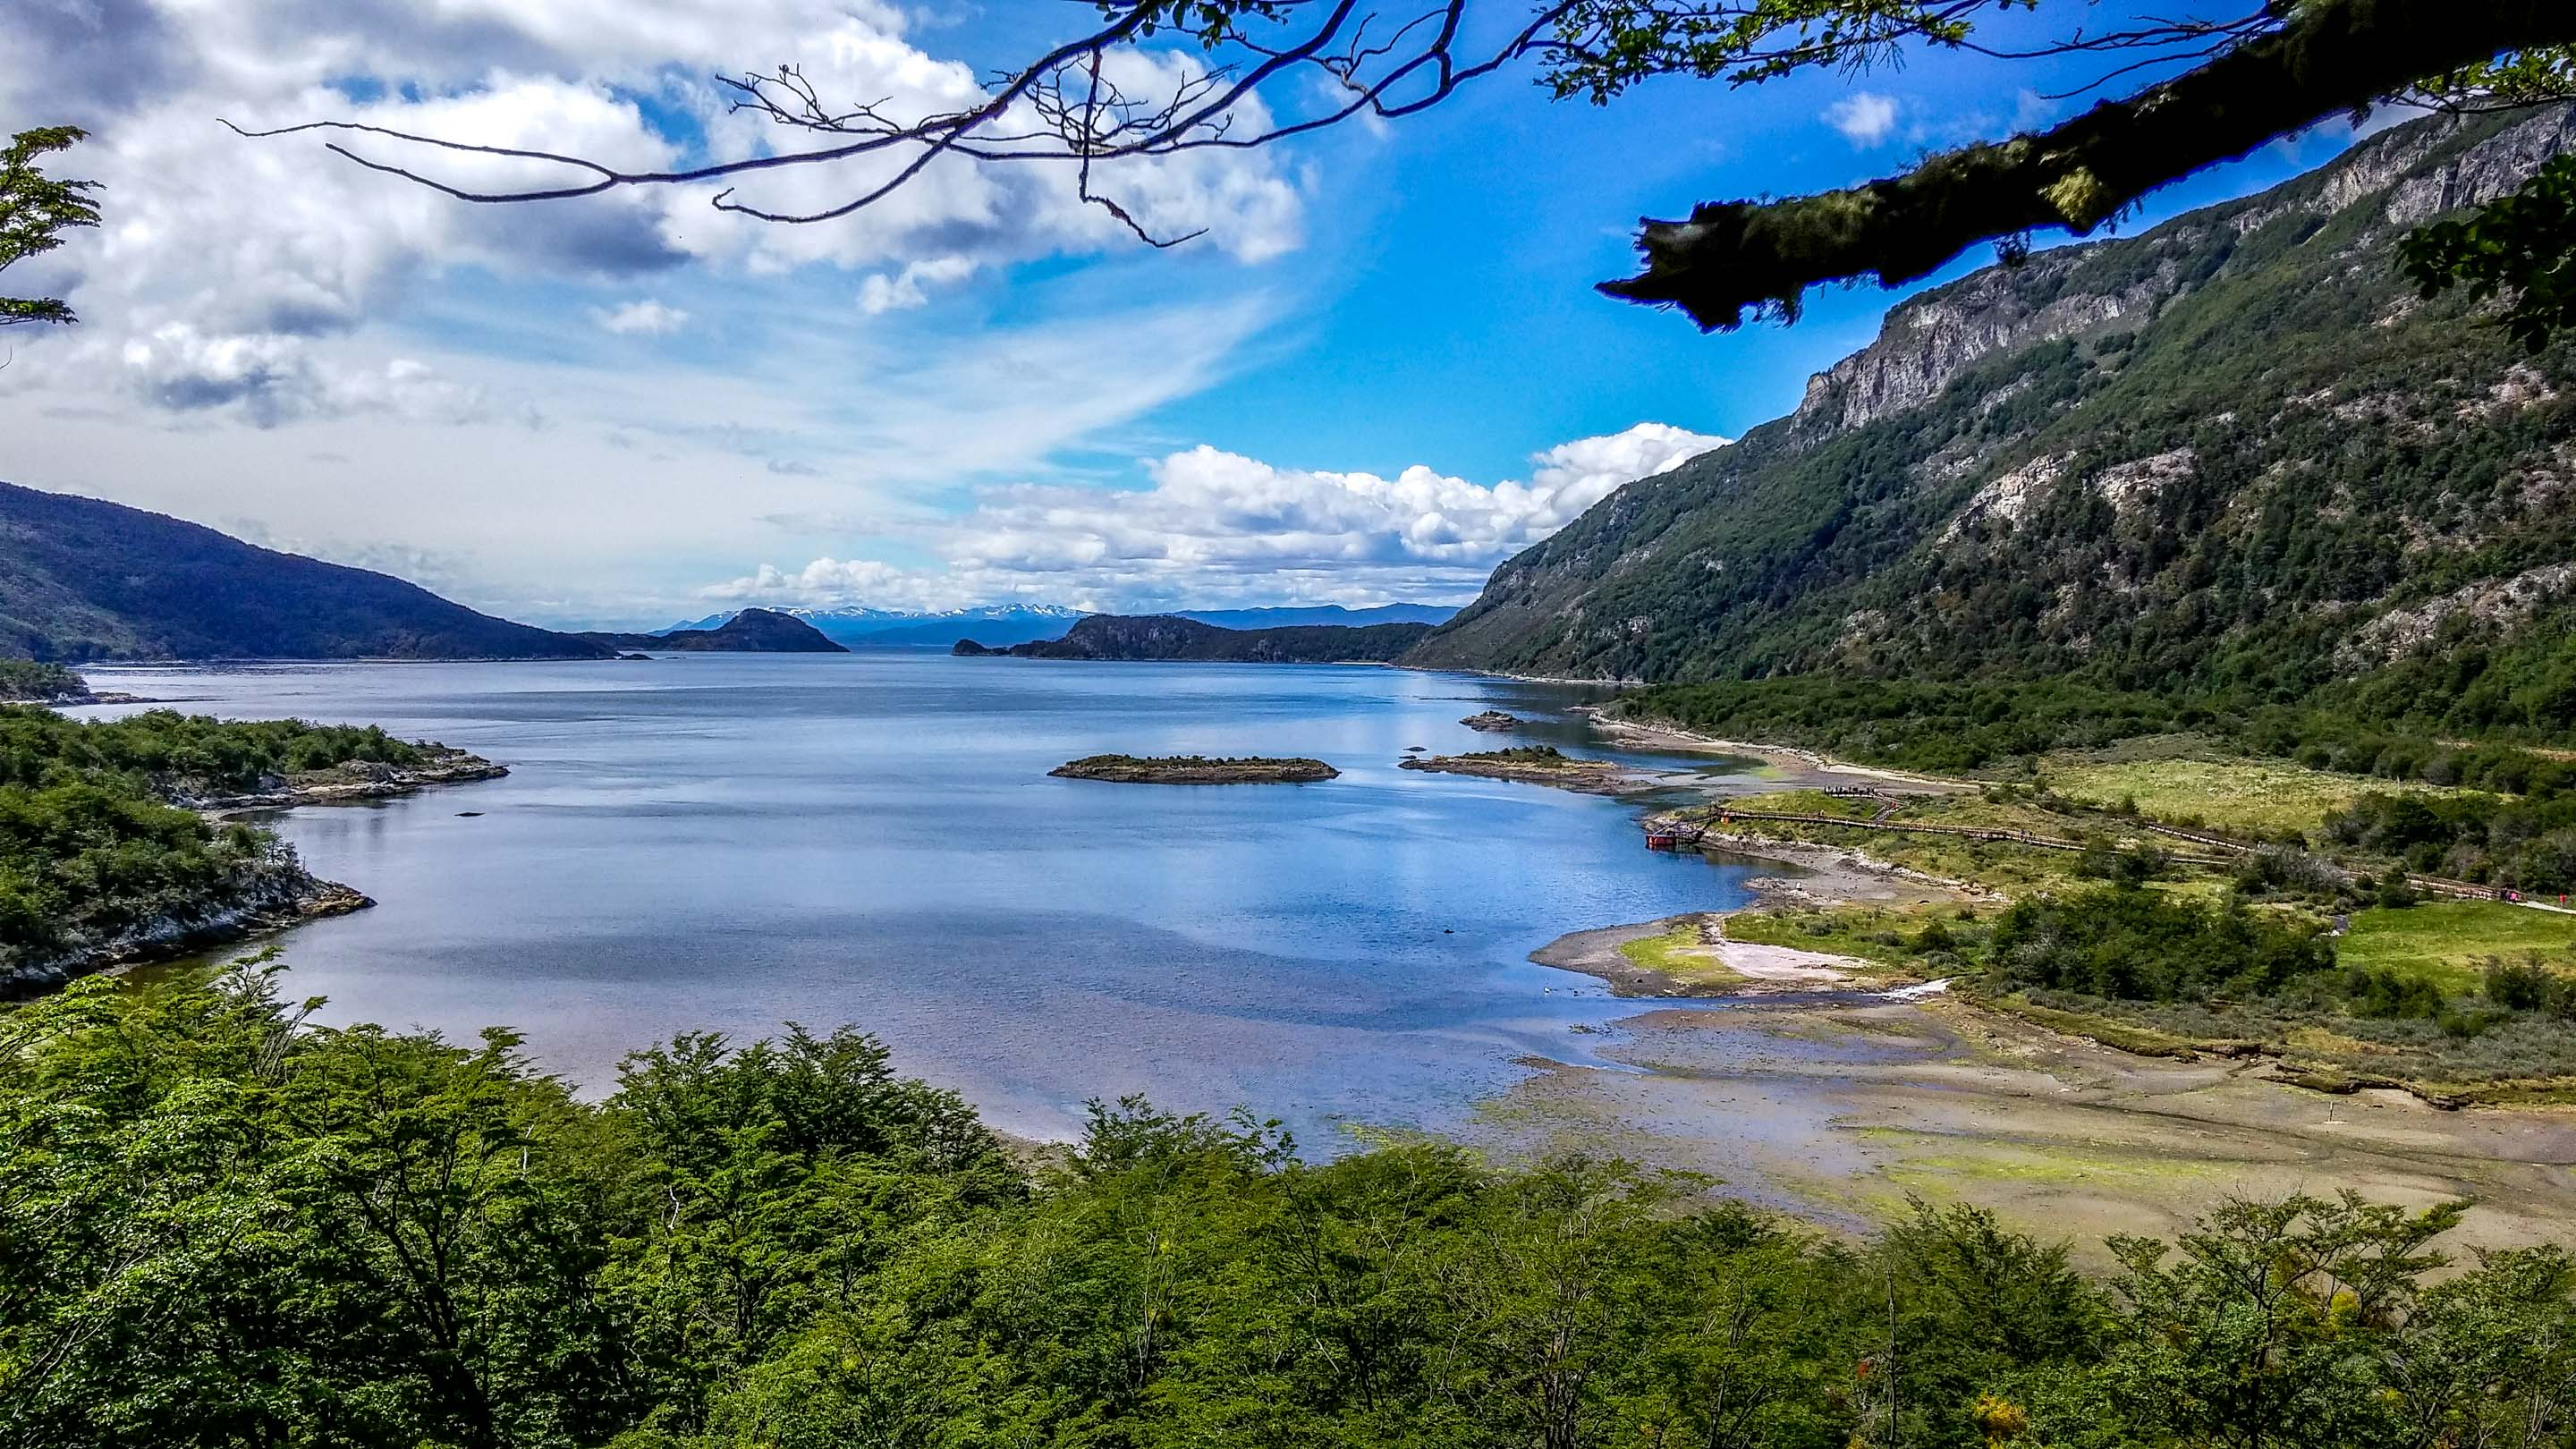 by drone with Tierra Del Fuego National Park on Dr Alexander Gauland Alternative Fuer Deutschland as well Fireworks 16 moreover 24649995064 together with Tierra Del Fuego National Park together with Festival Resonance 2015 Pont Davignon.